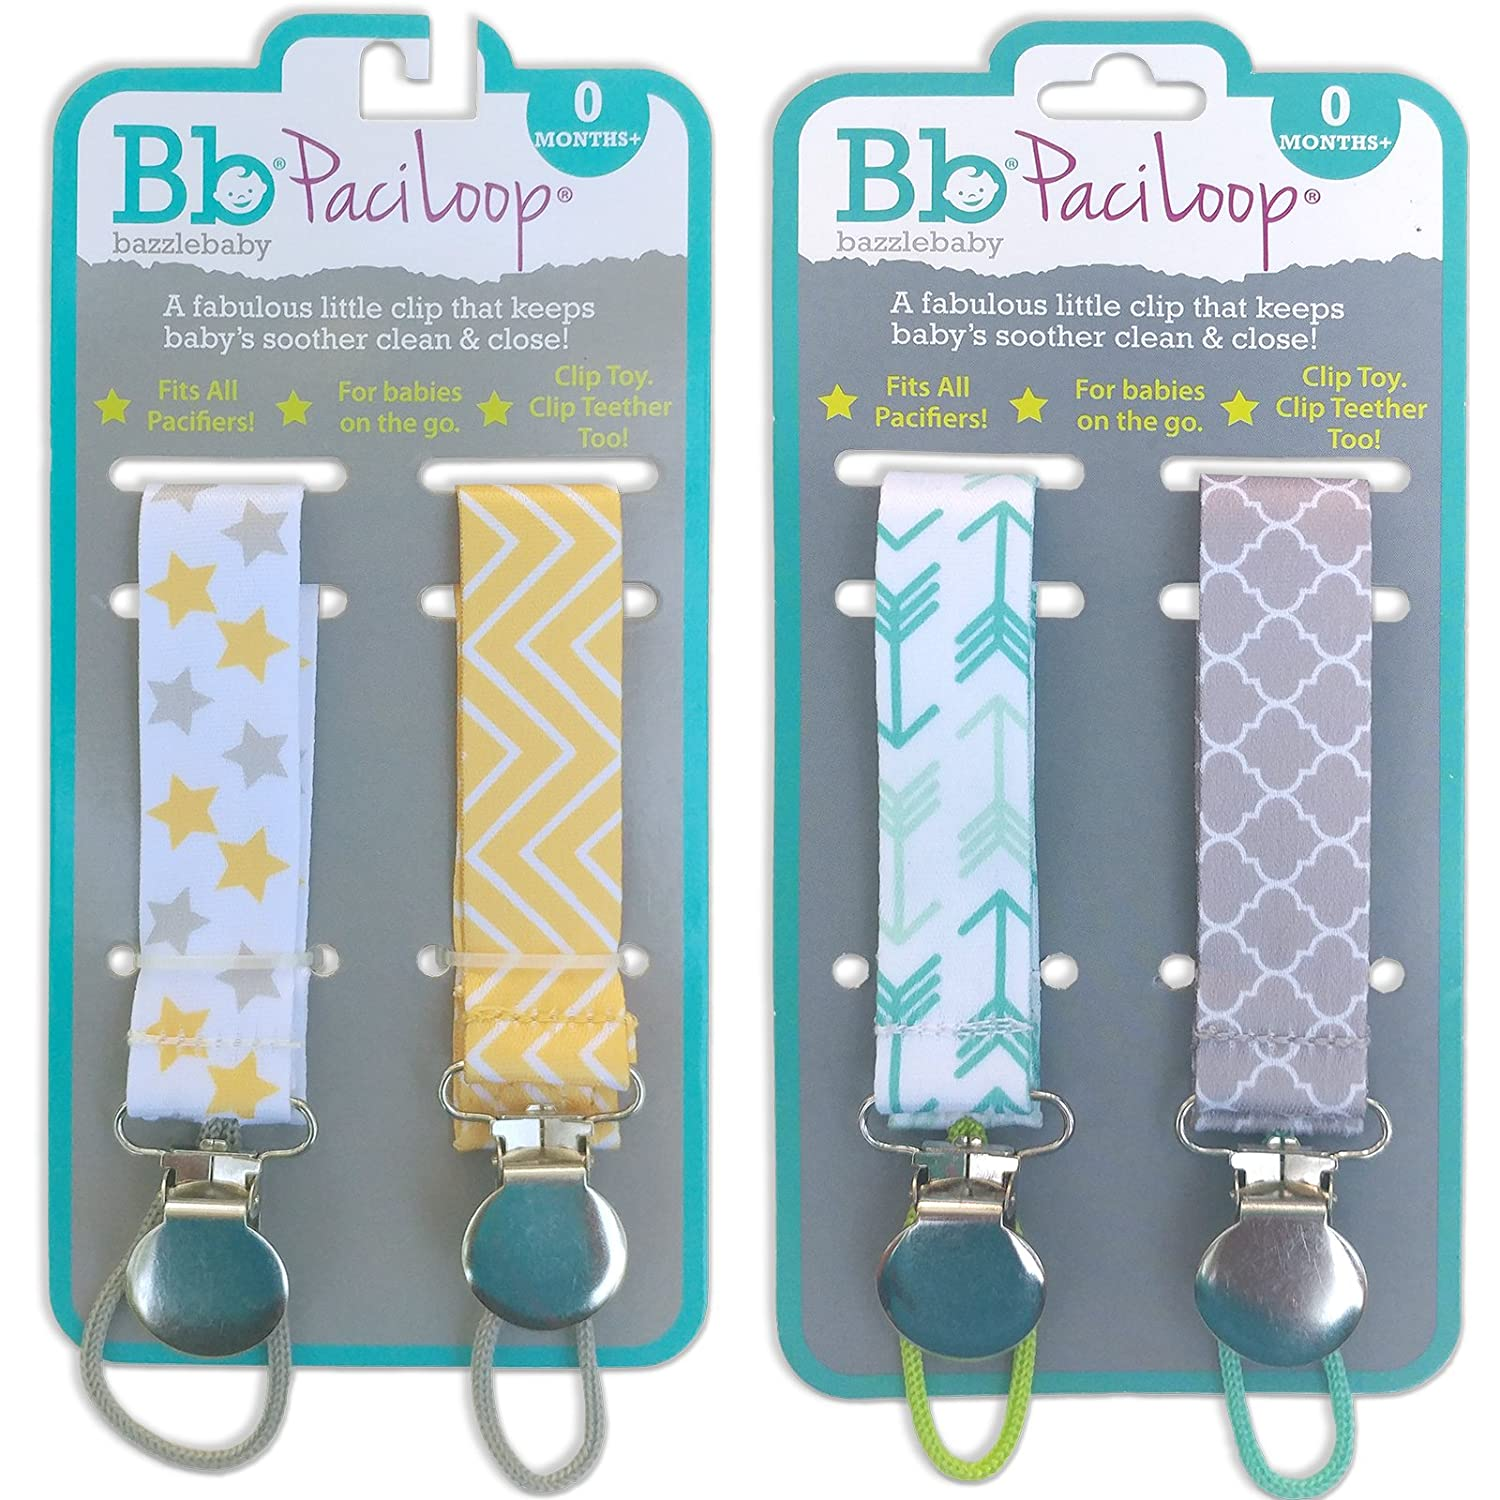 Bazzle Baby Paci Loop, 4 Piece Durable Pacifier Leashes with Secure Snaps to Keep Pacifiers Close & Clean on The Go, Great for Car Seats & Strollers, ...